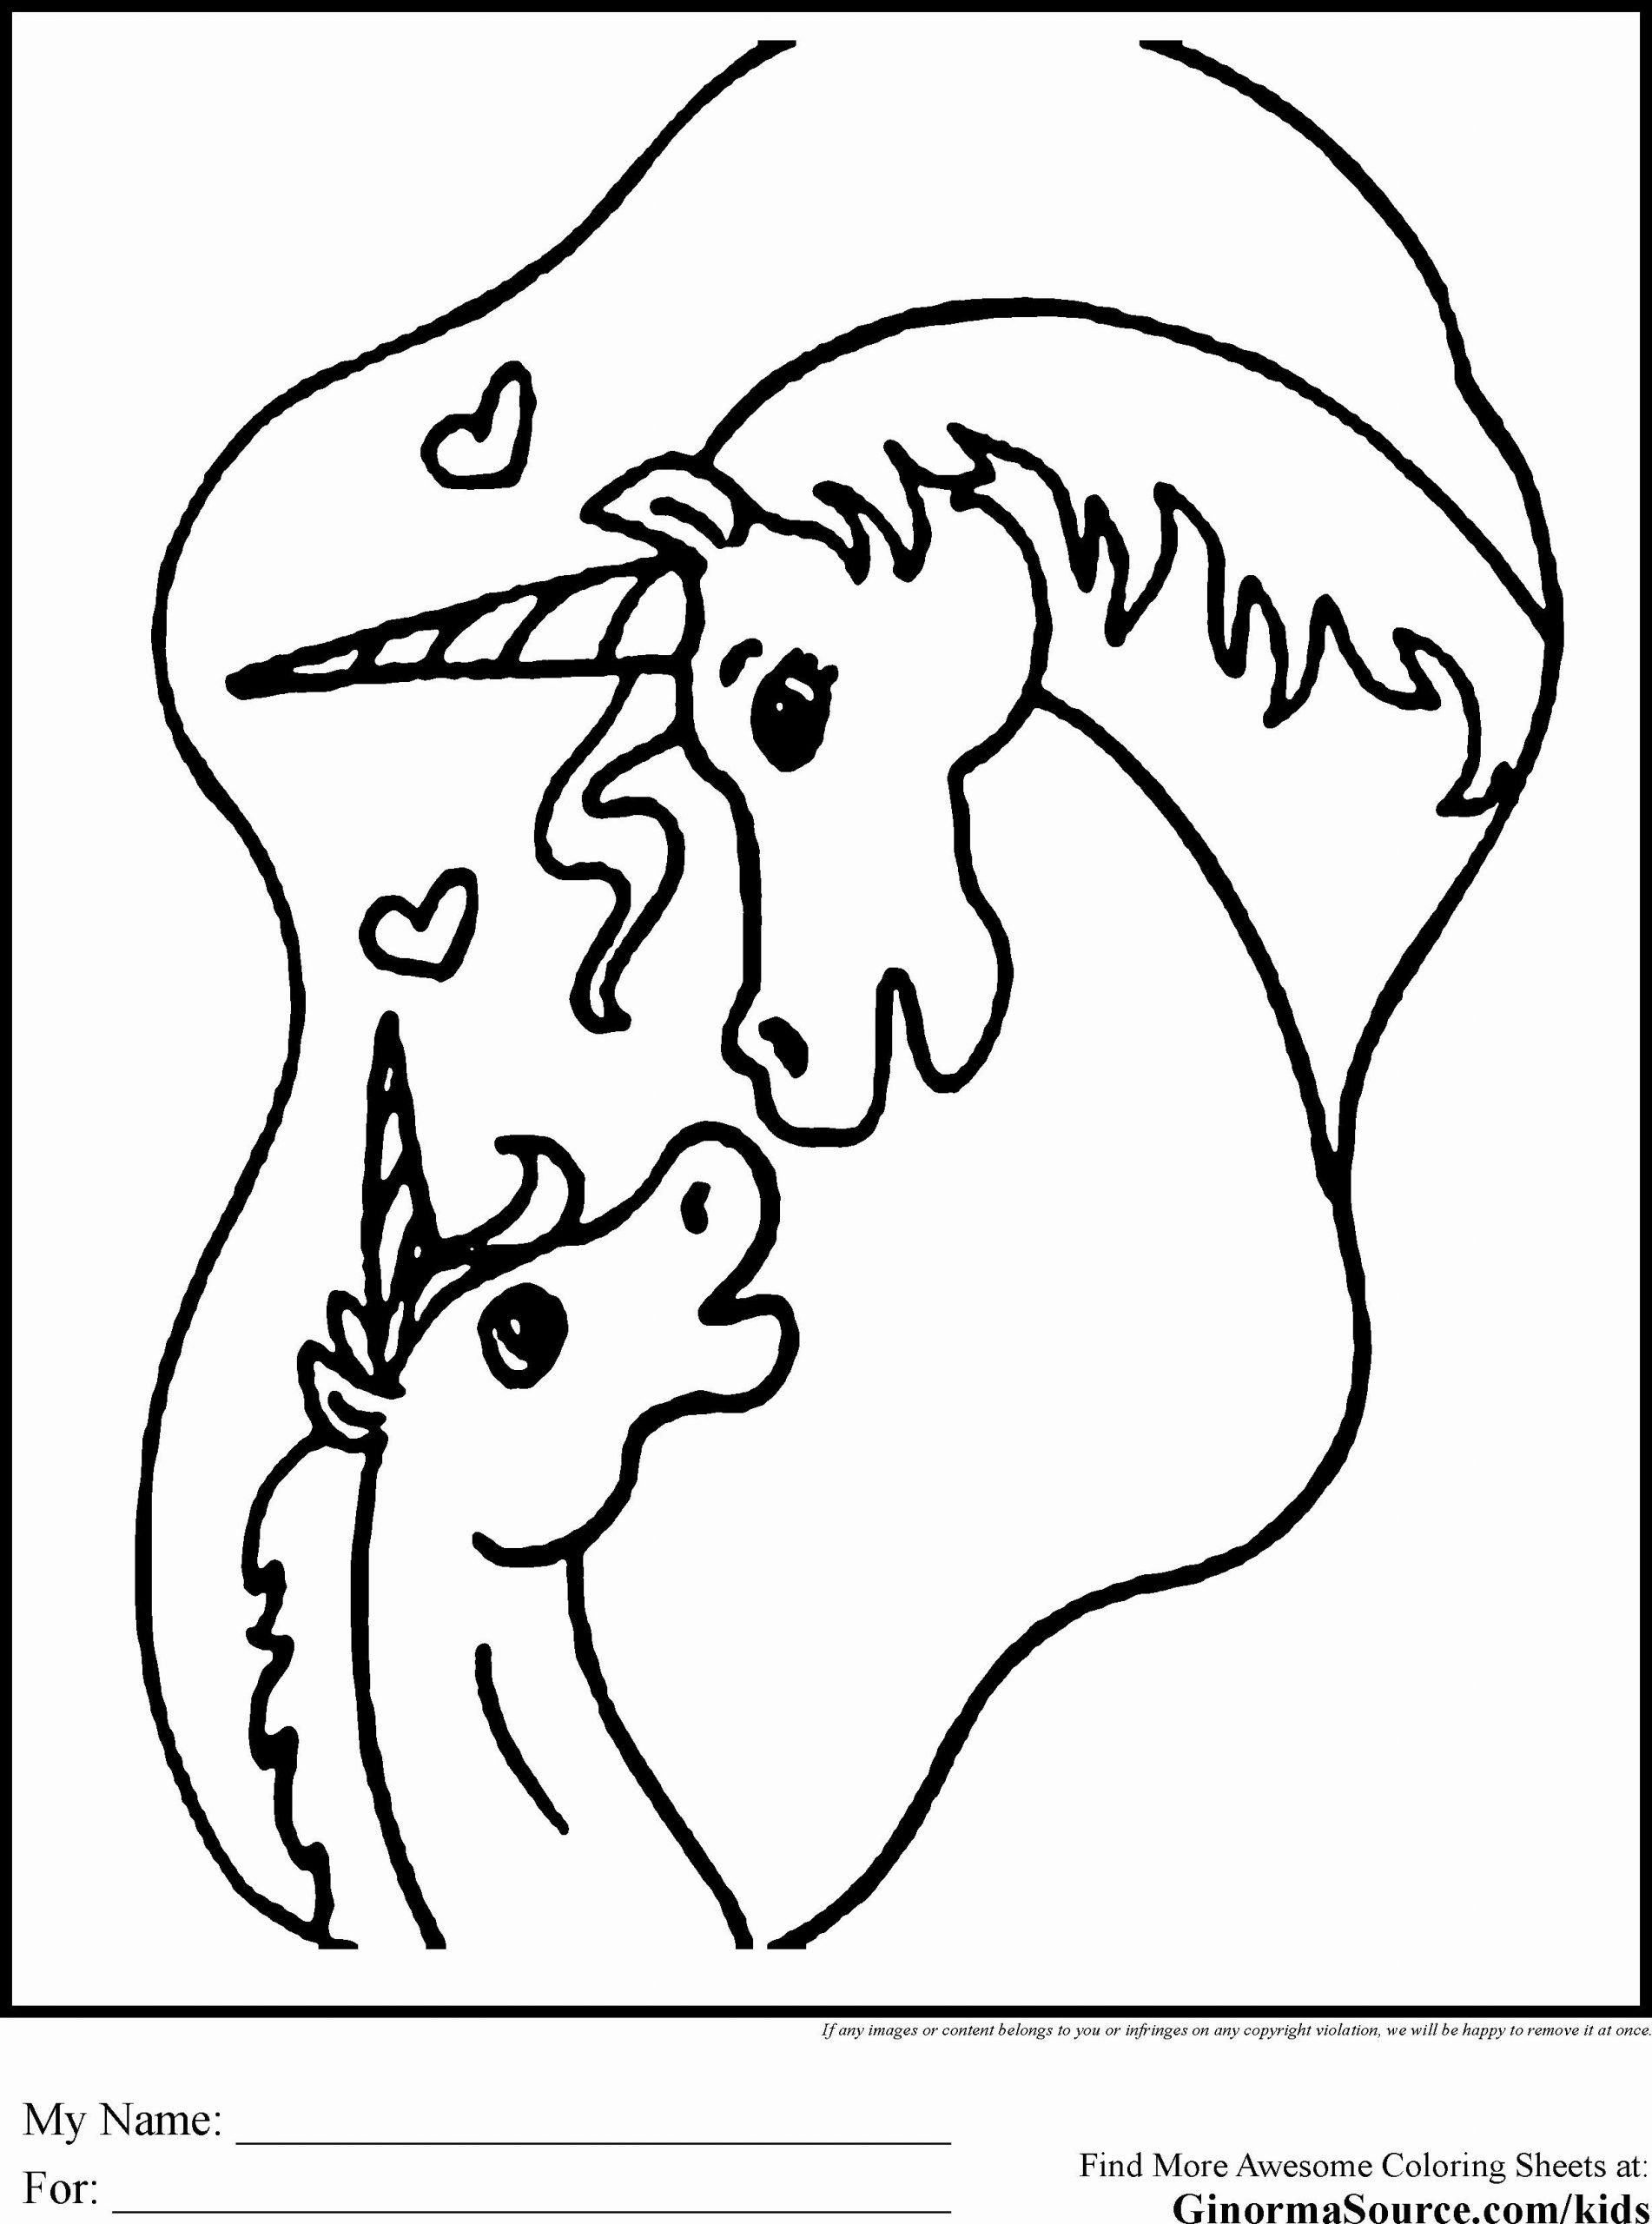 Baby Unicorn Coloring Pages 28 Baby Unicorn Coloring Page In 2020 Unicorn Coloring Pages Love Coloring Pages Printable Valentines Coloring Pages